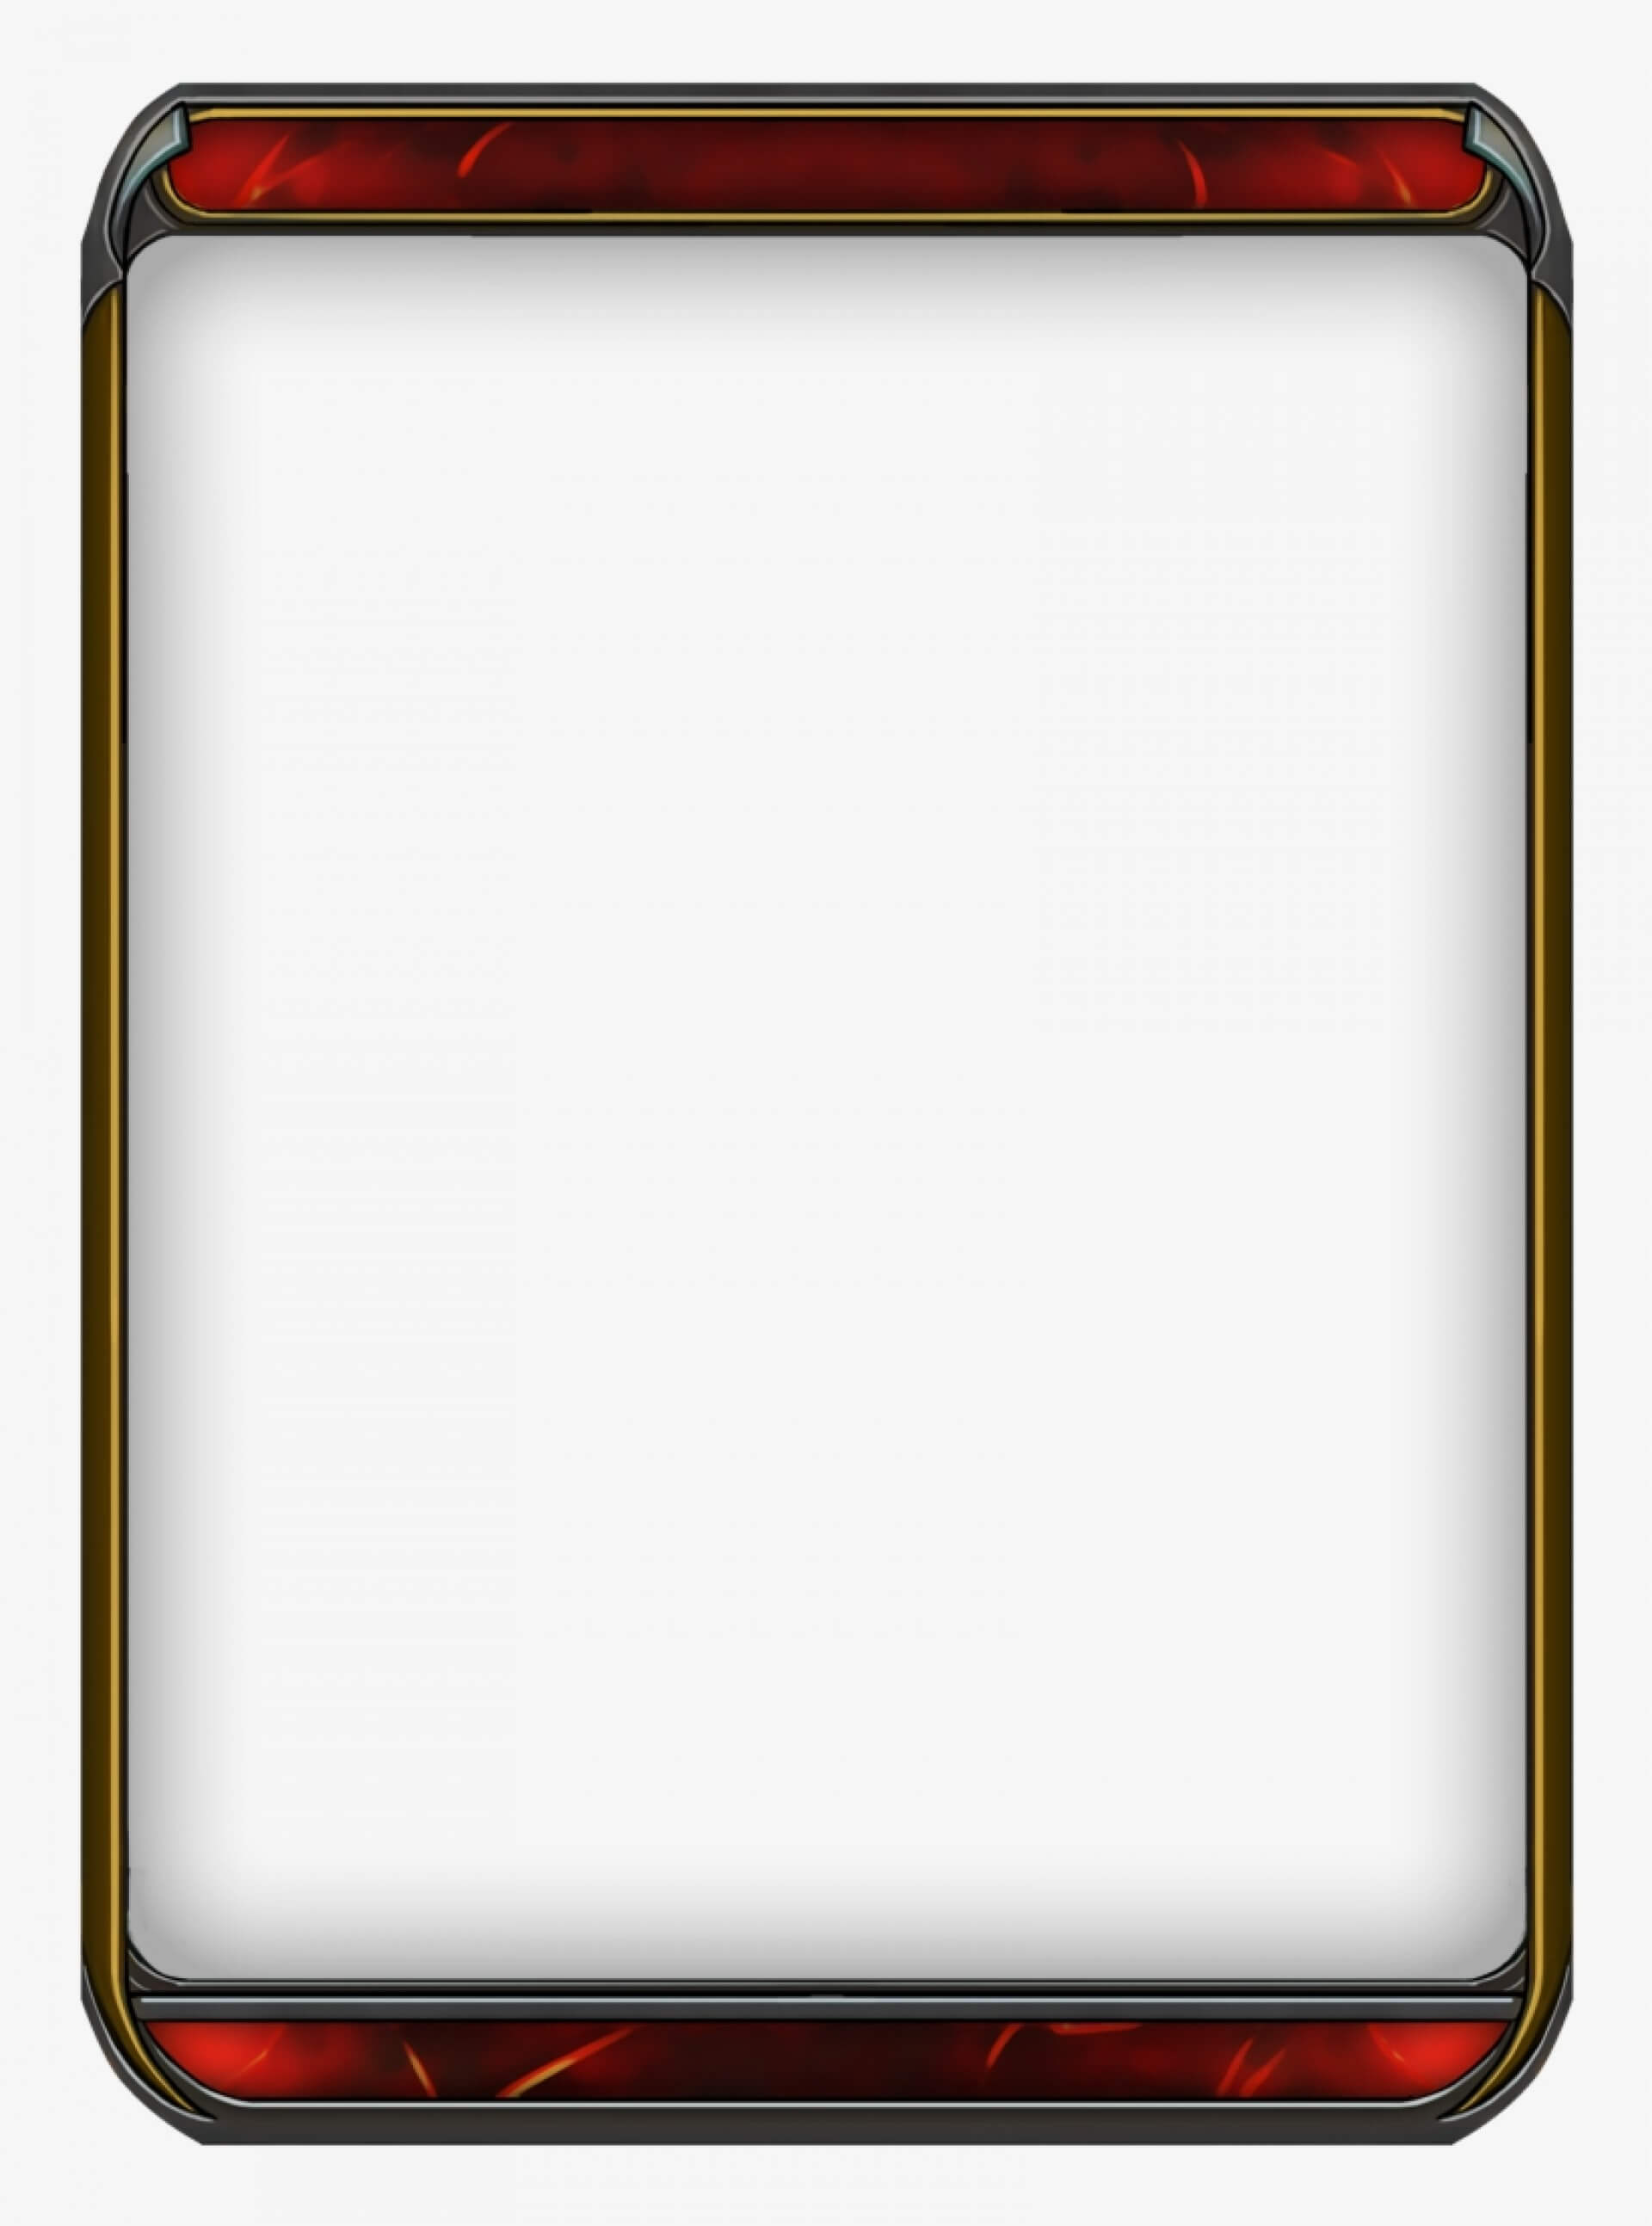 007 Free Trading Card Template Ideas 2302165 Blank Large Within Free Sports Card Template